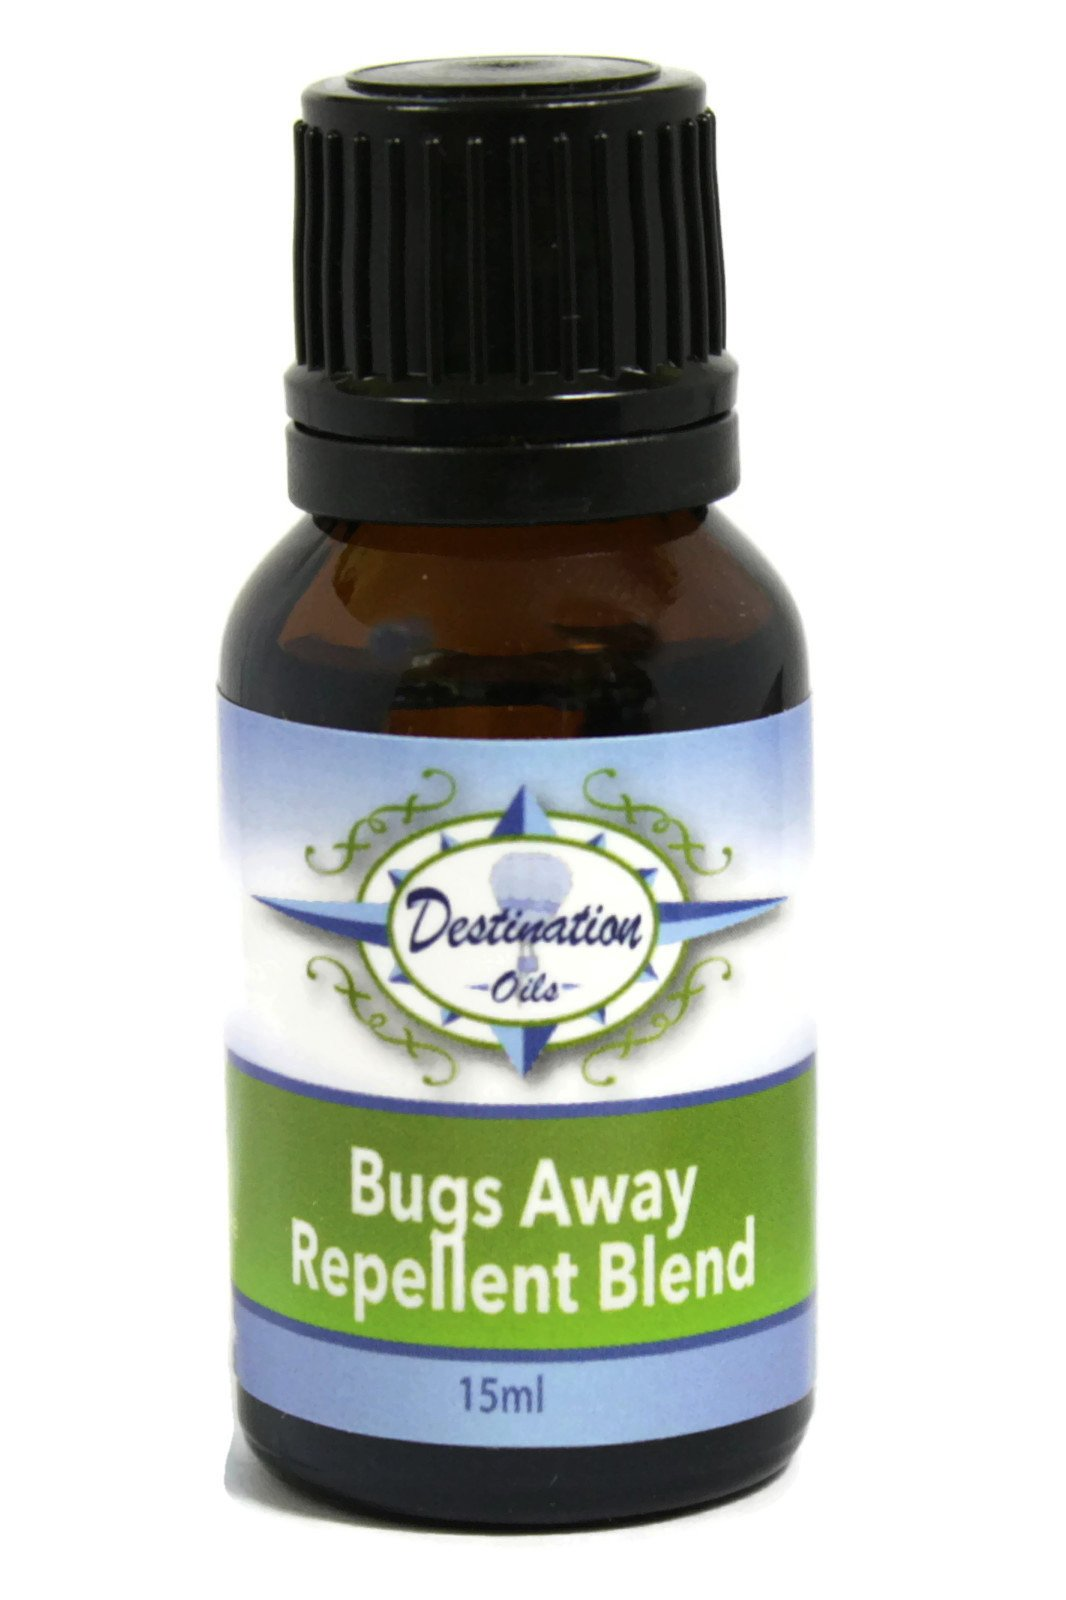 Bugs Away - Insect Repellent Essential Oil Blend - 15ml-Essential Oil Blend-Destination Oils